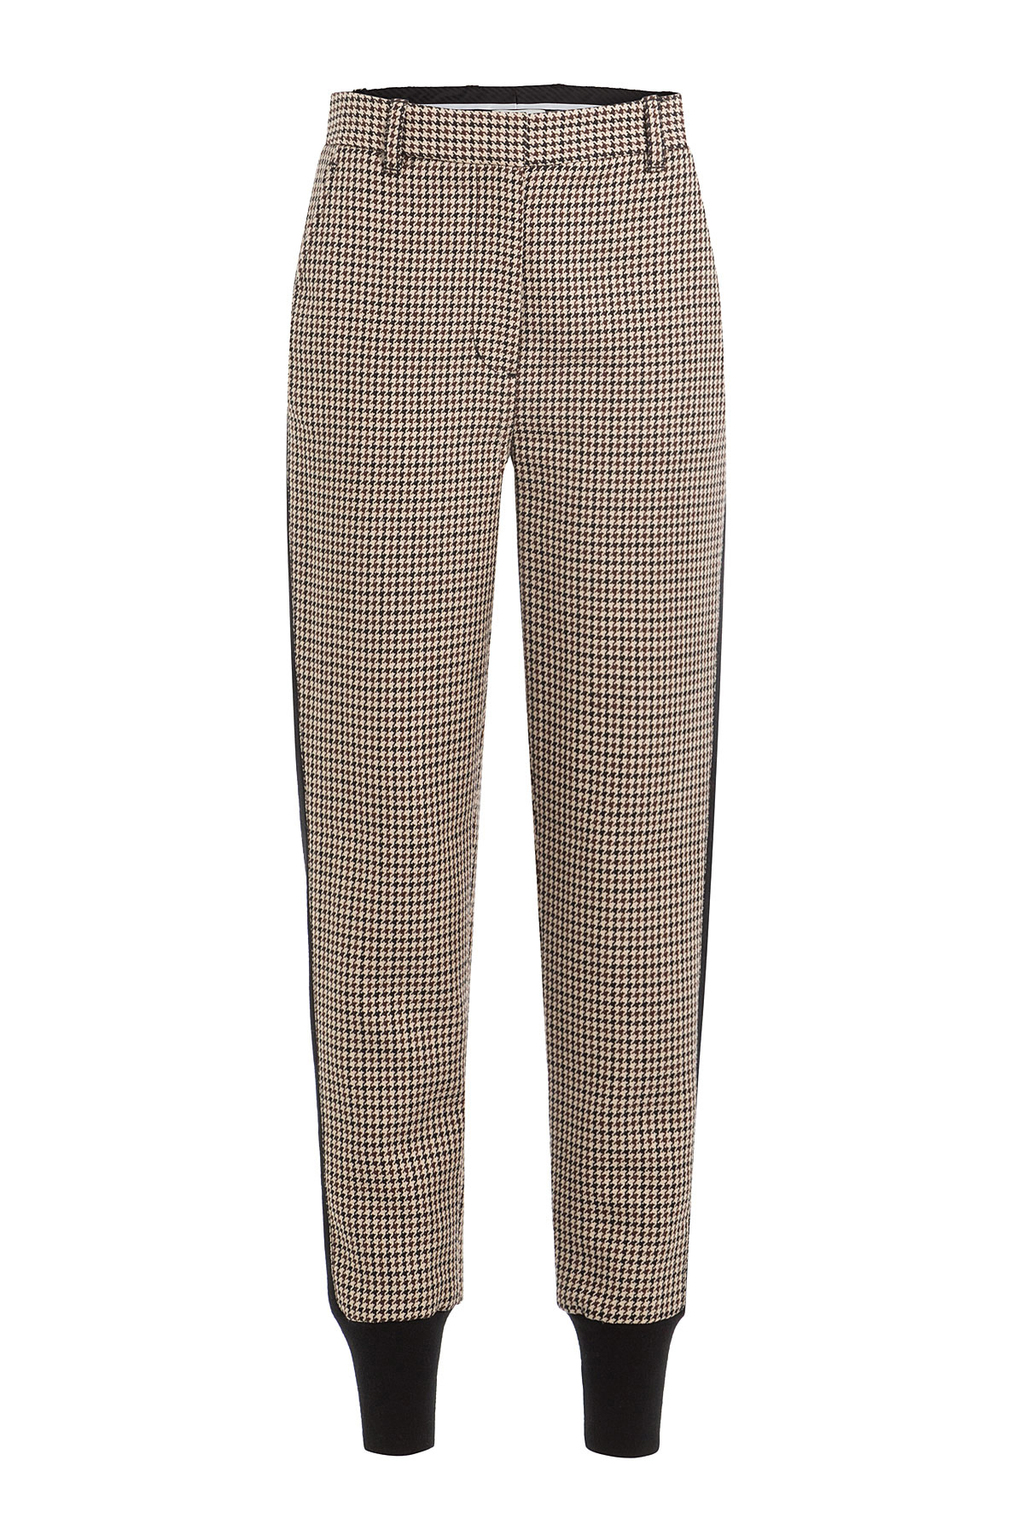 Printed Wool Pants With Cuffed Ankles - length: standard; pattern: plain; waist: mid/regular rise; predominant colour: stone; secondary colour: black; fibres: wool - mix; waist detail: feature waist detail; fit: tapered; pattern type: fabric; texture group: woven light midweight; style: standard; occasions: creative work; wardrobe: basic; season: a/w 2016